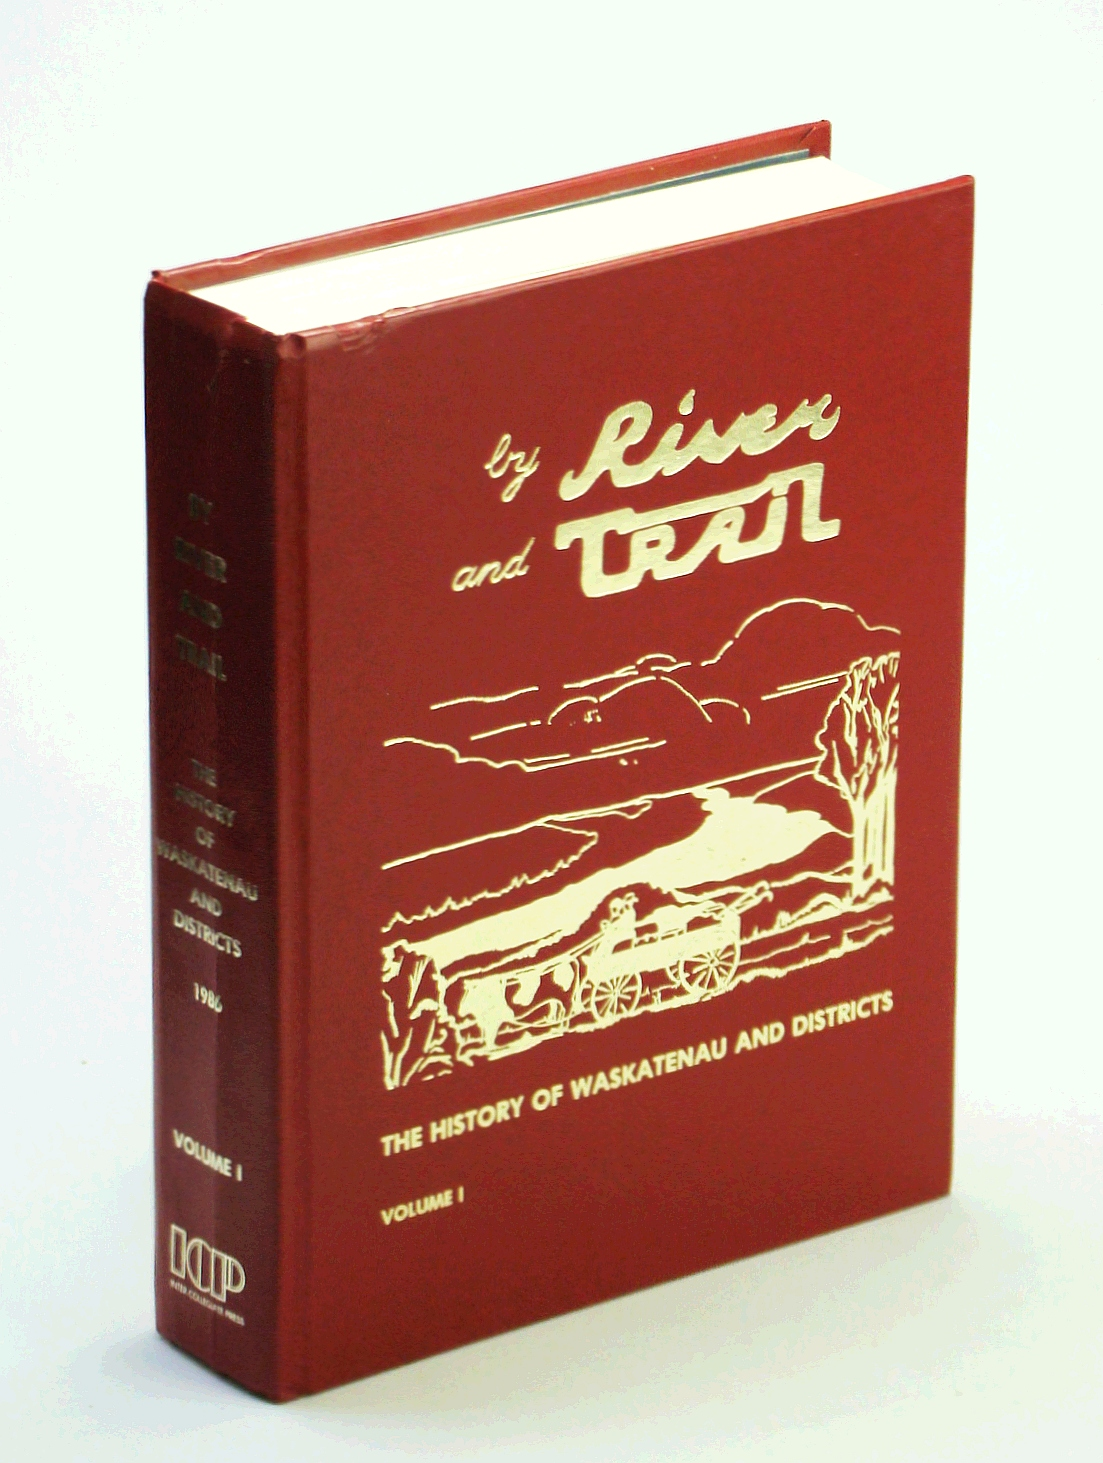 Image for By River and Trail: The History of Waskatenau and Districts (Volume 1)